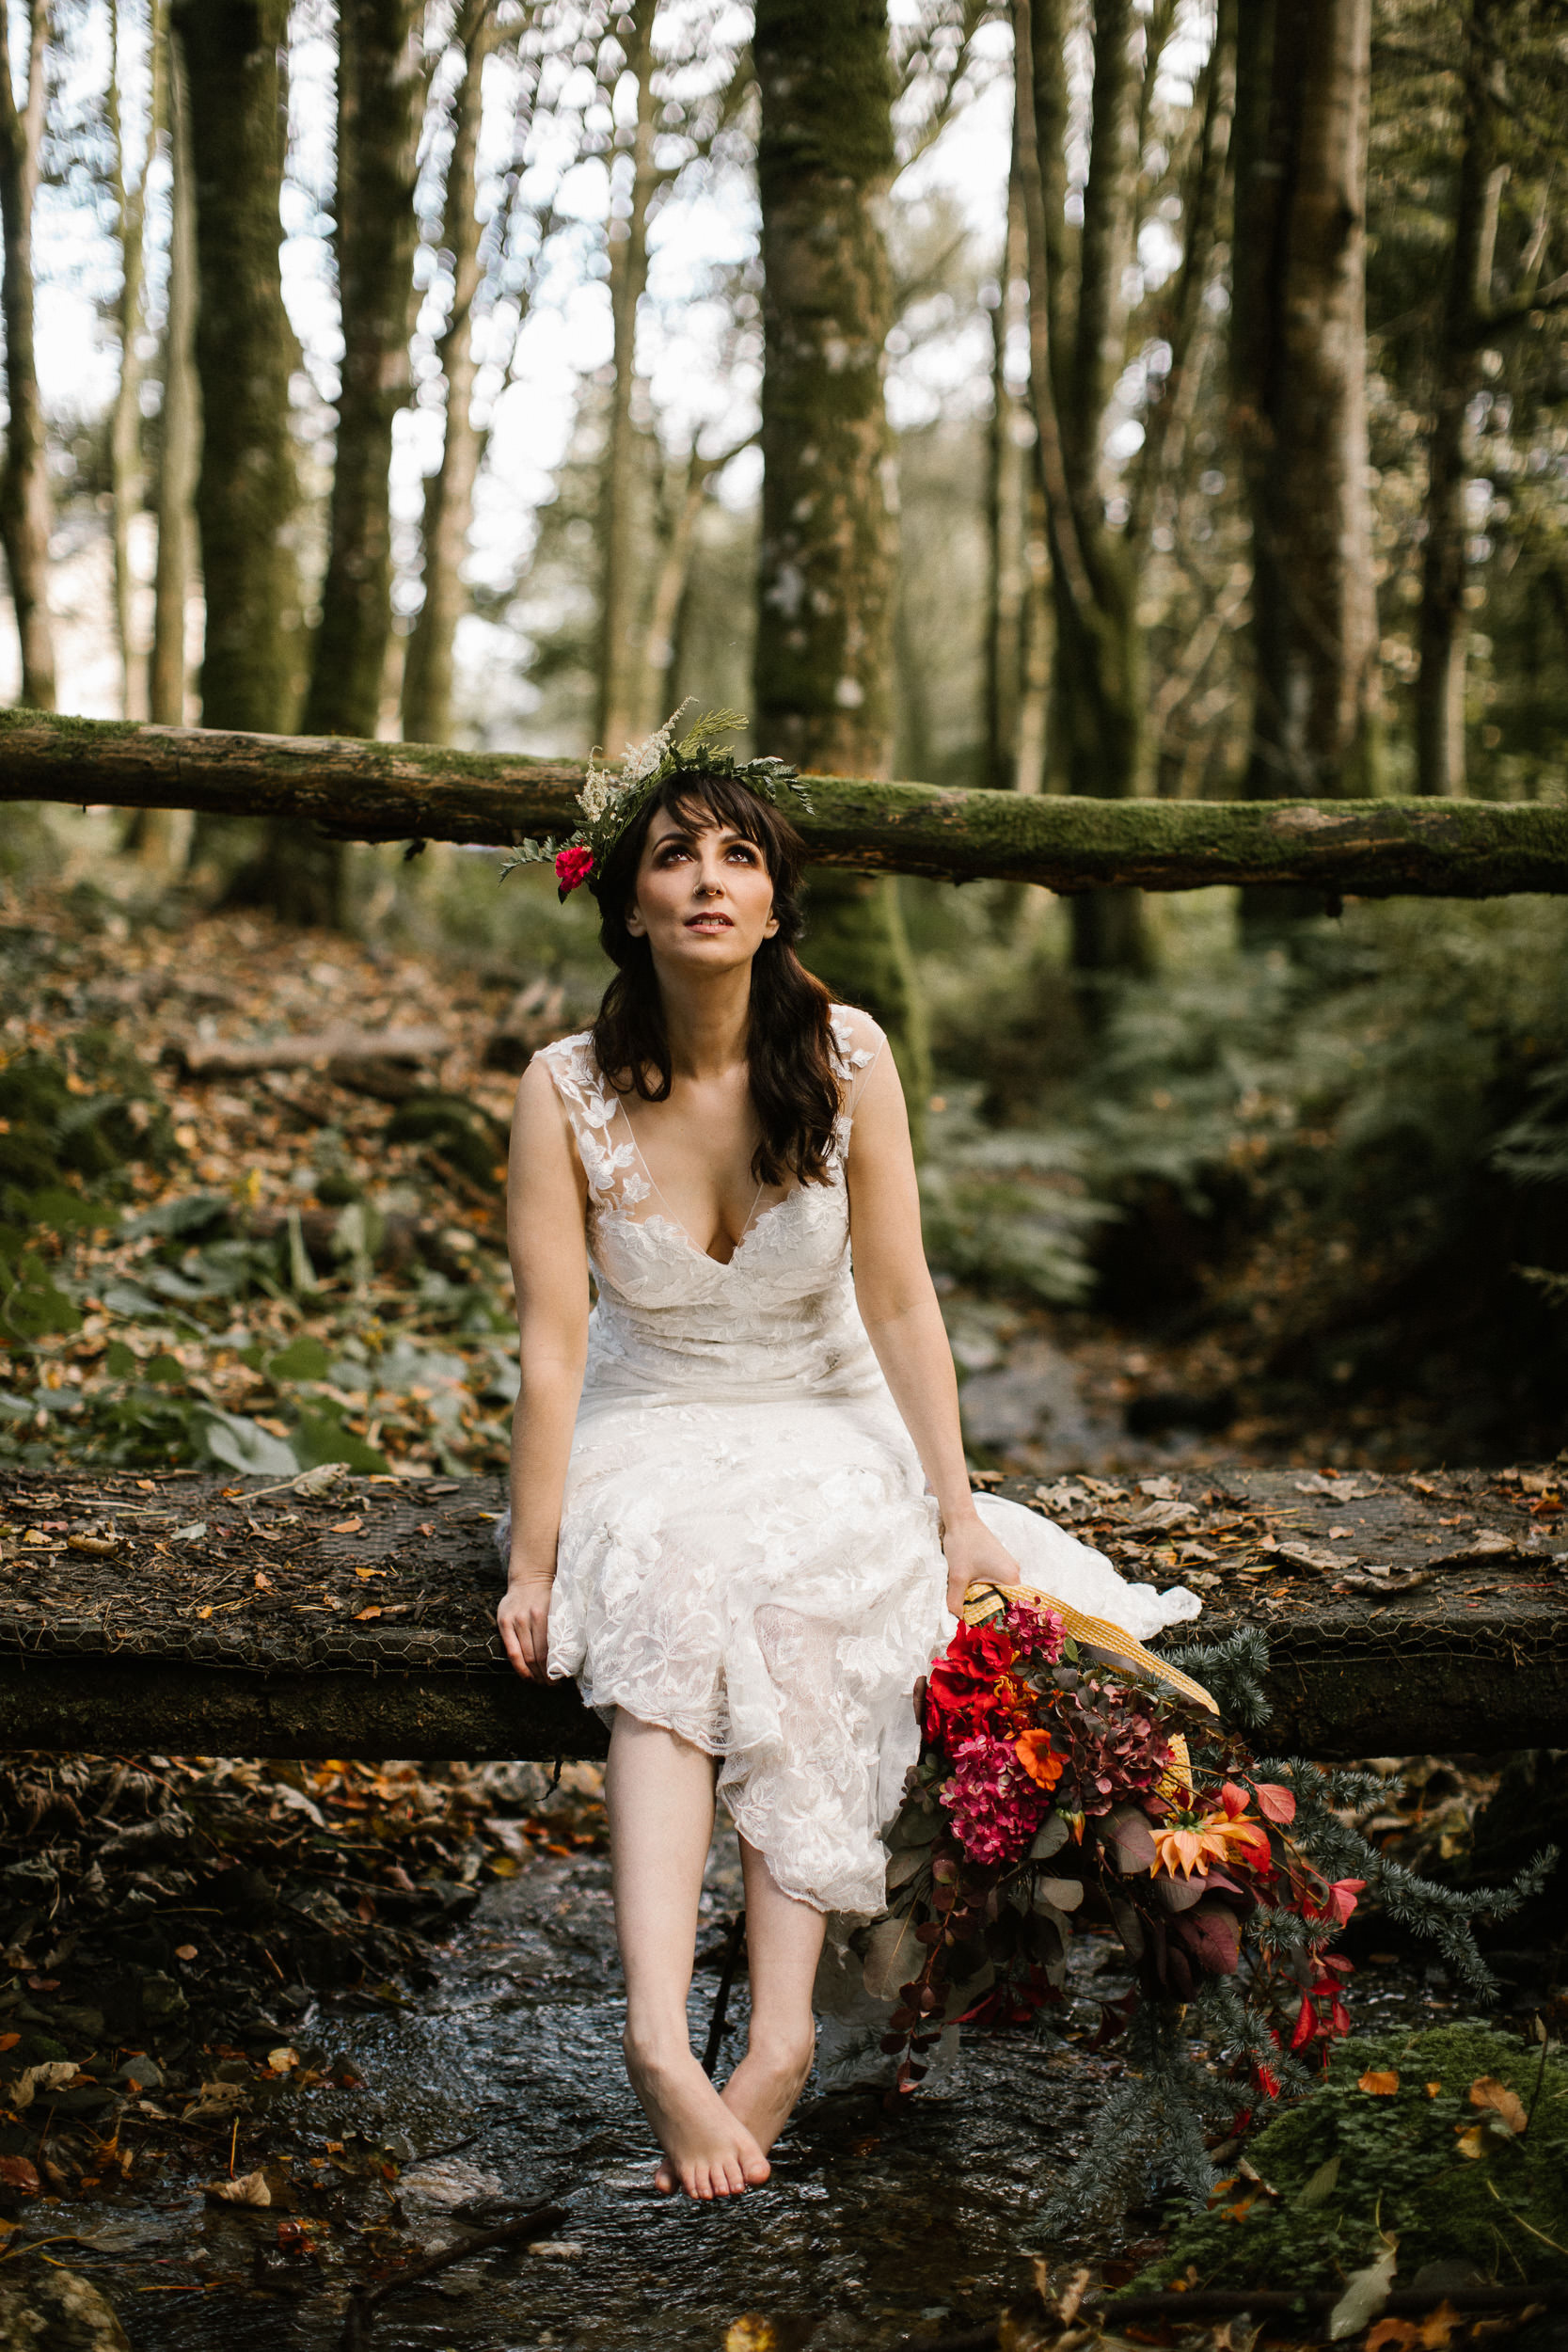 clairebyrnephotography-styled-shoot-huntingbrook-gardens-inspiration-weddings-woods-forest-67.jpg